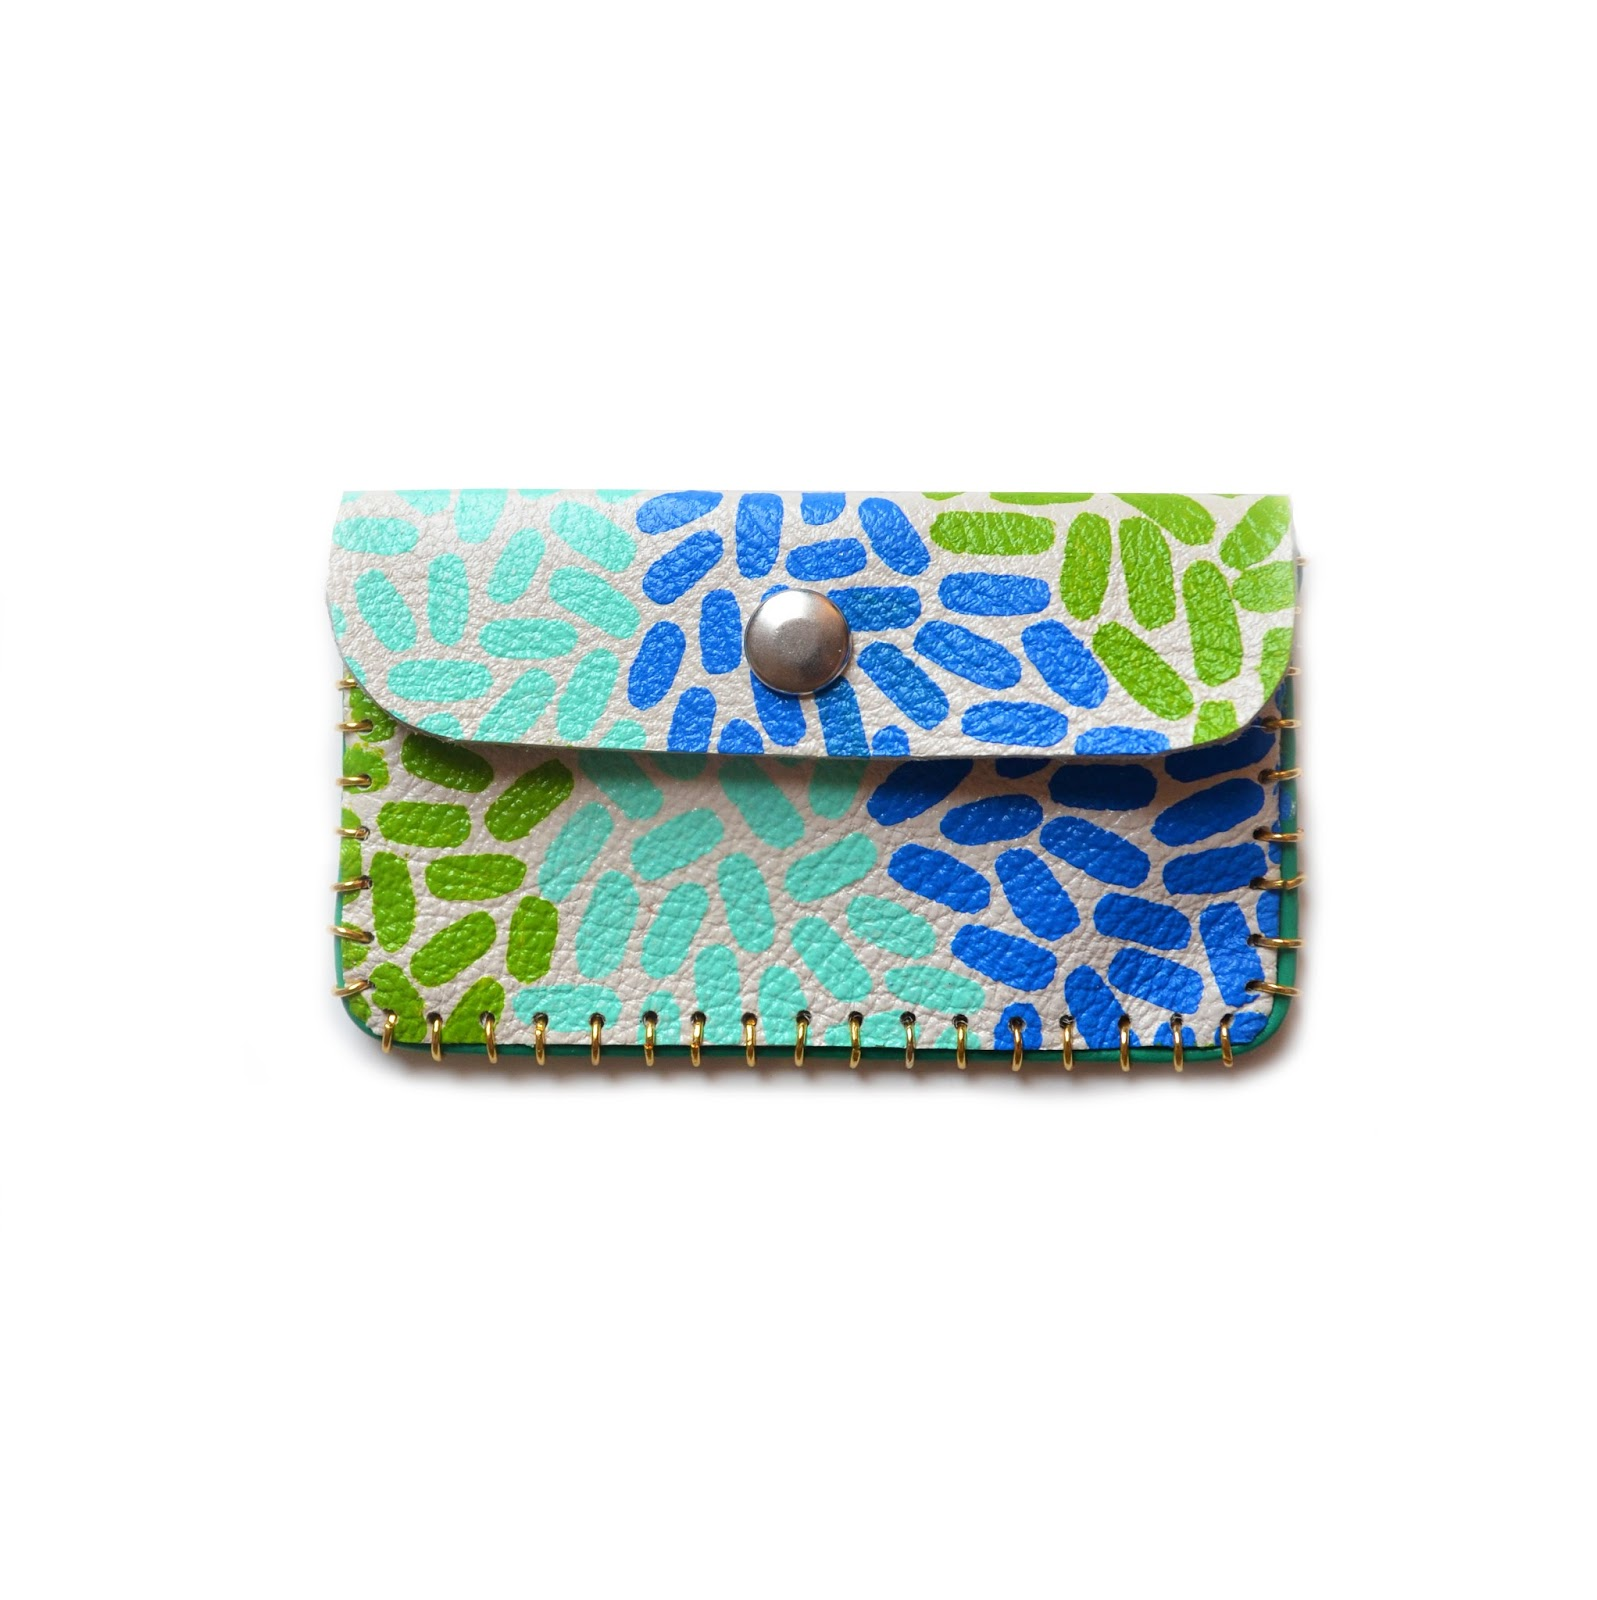 Boo and Boo Factory: New Hand Painted Leather Wallets, Small ...